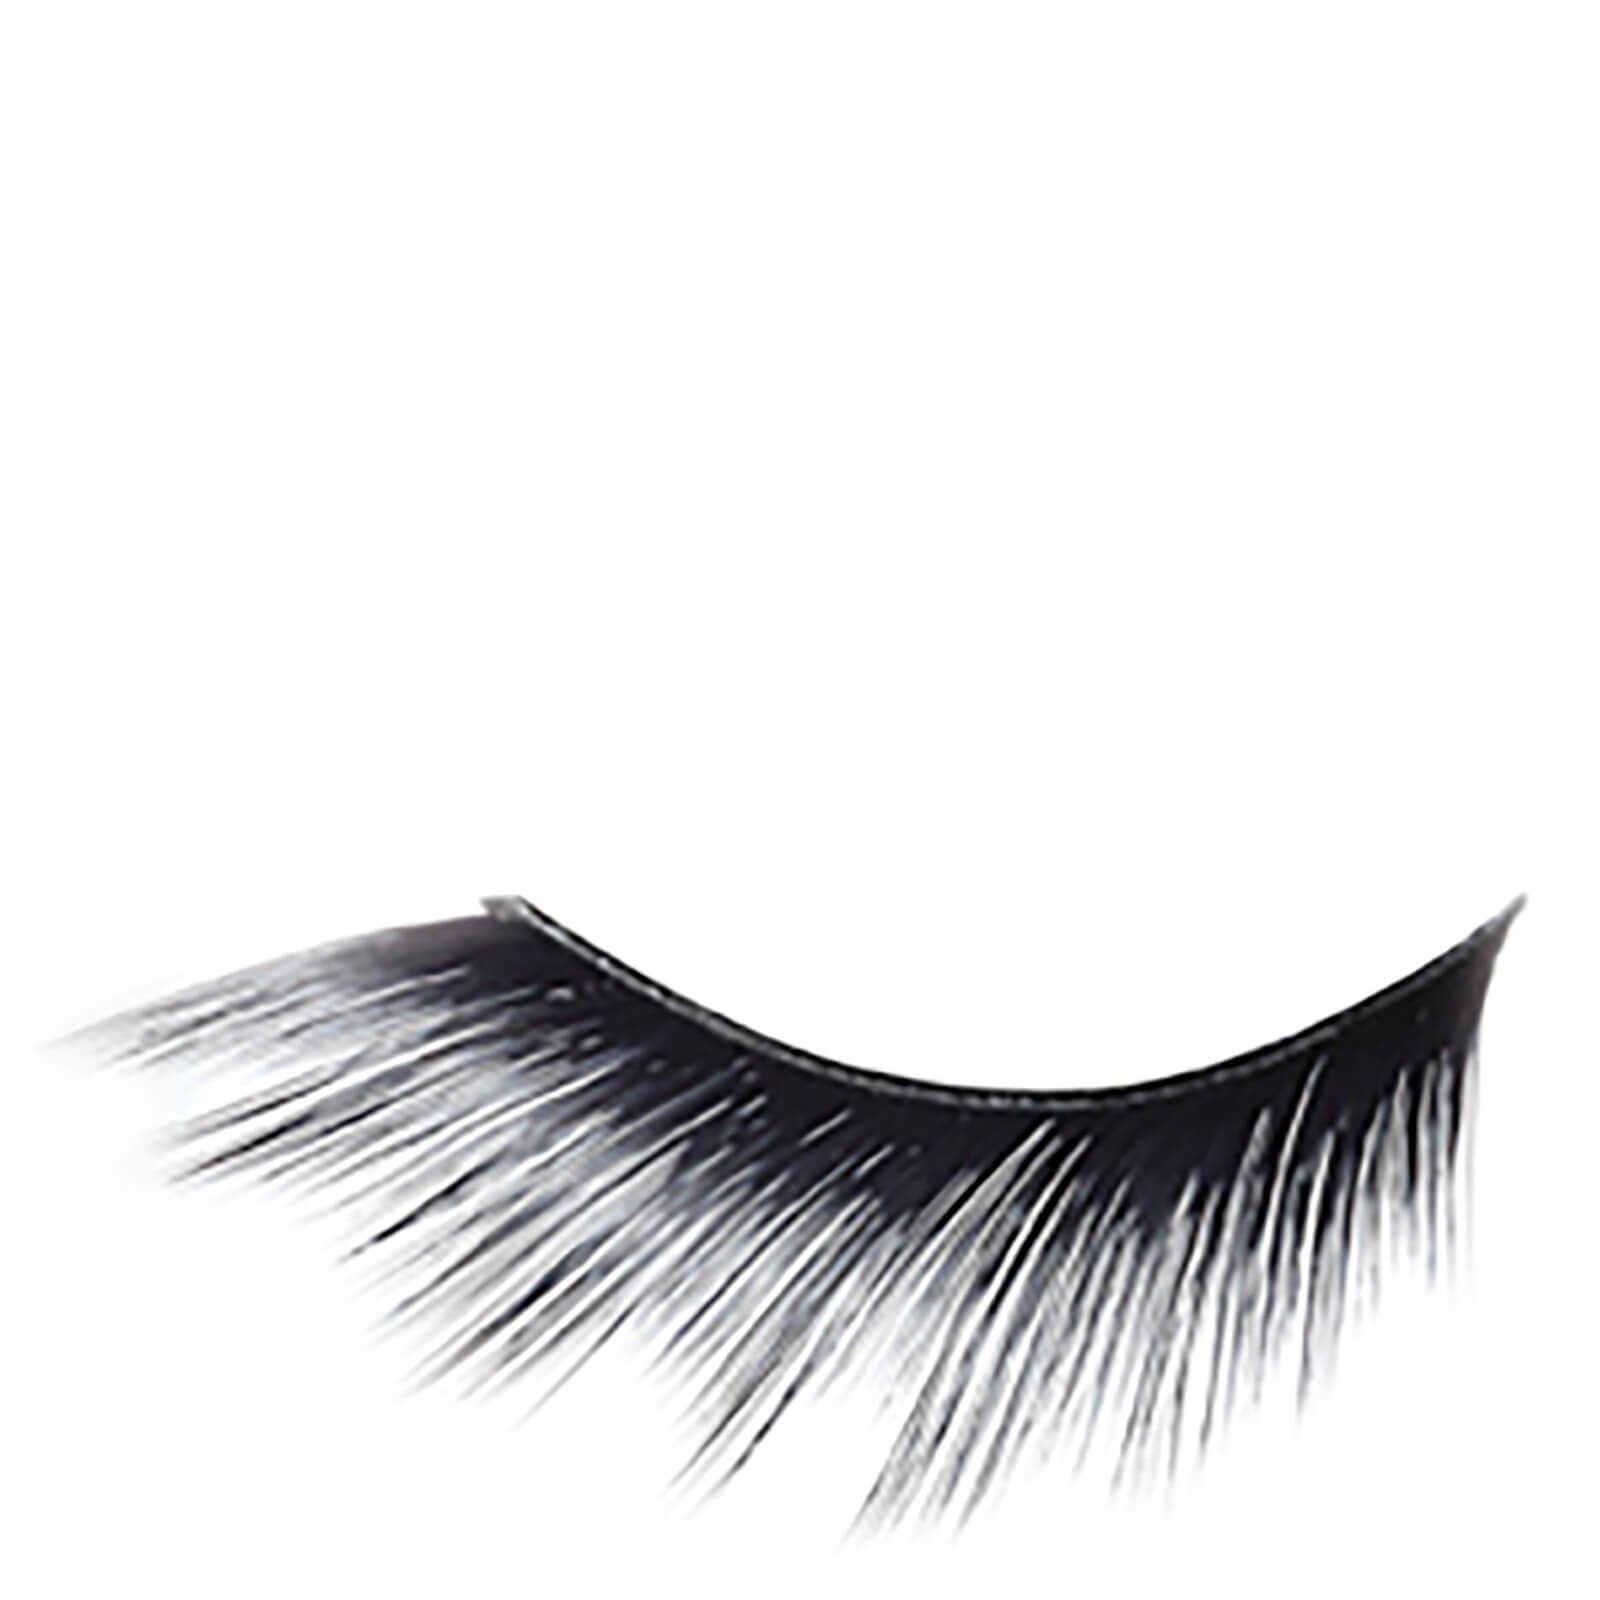 False Eye Lashes - Intoxicate (13)